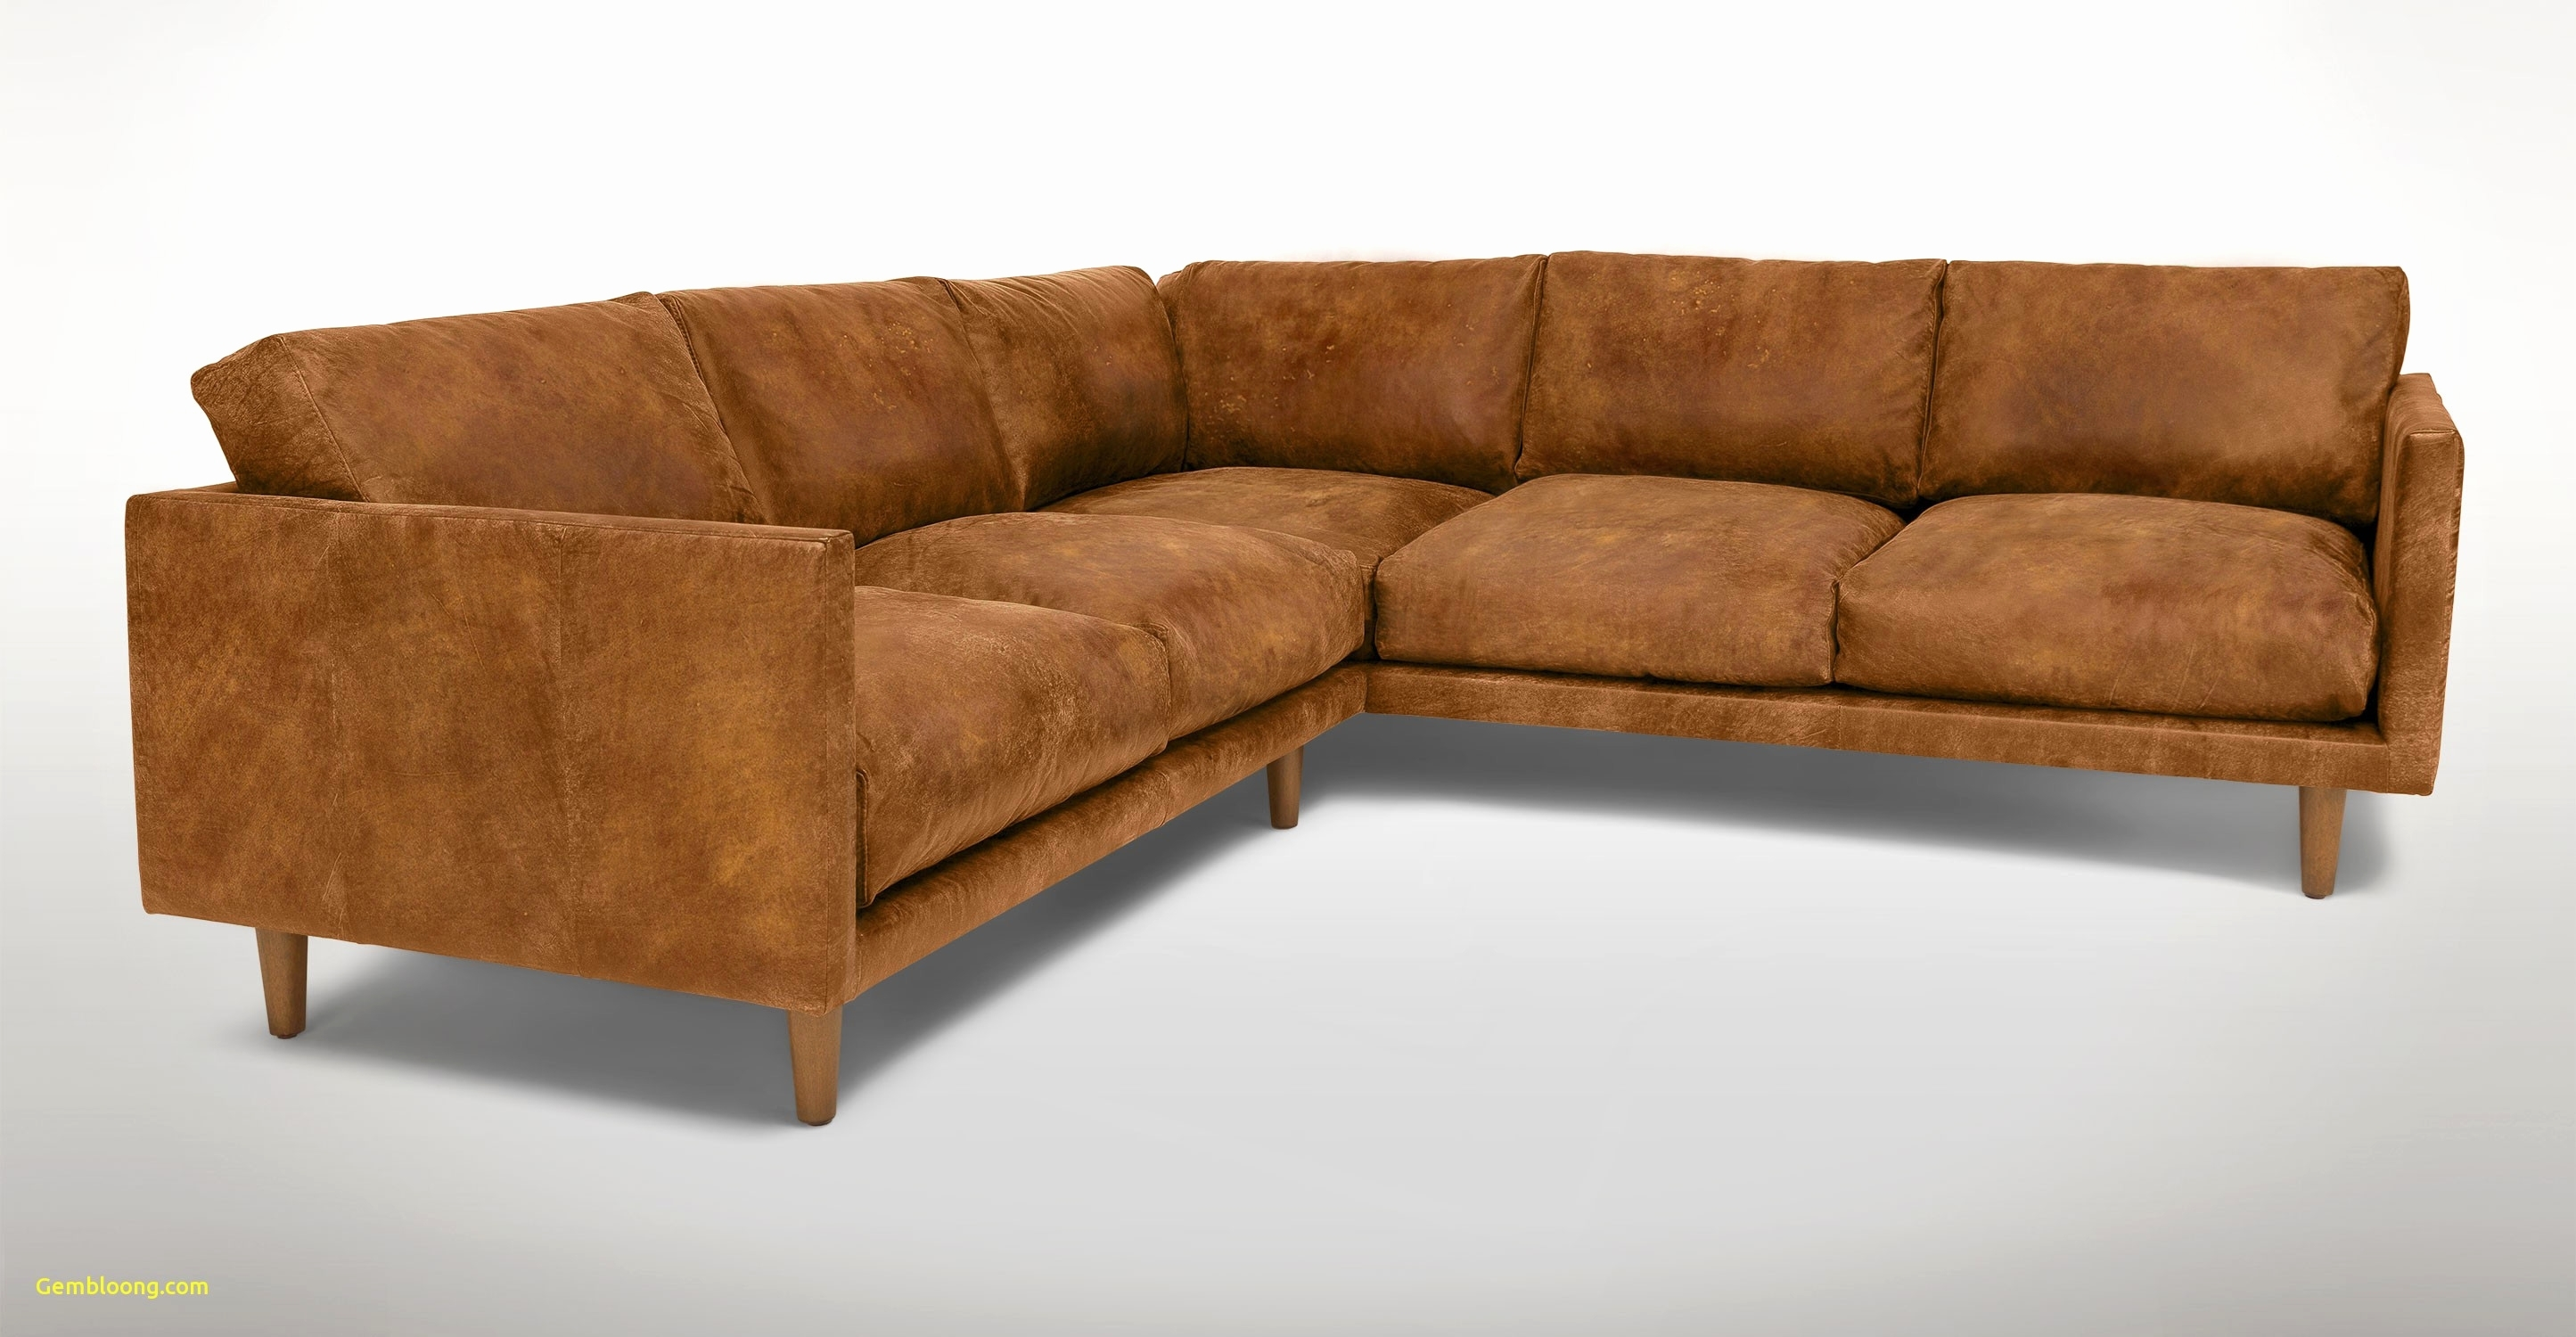 27 Elegant Shallow Seat Depth Sofa Images - Everythingalyce in Egan Ii Cement Sofa Sectionals With Reversible Chaise (Image 2 of 30)